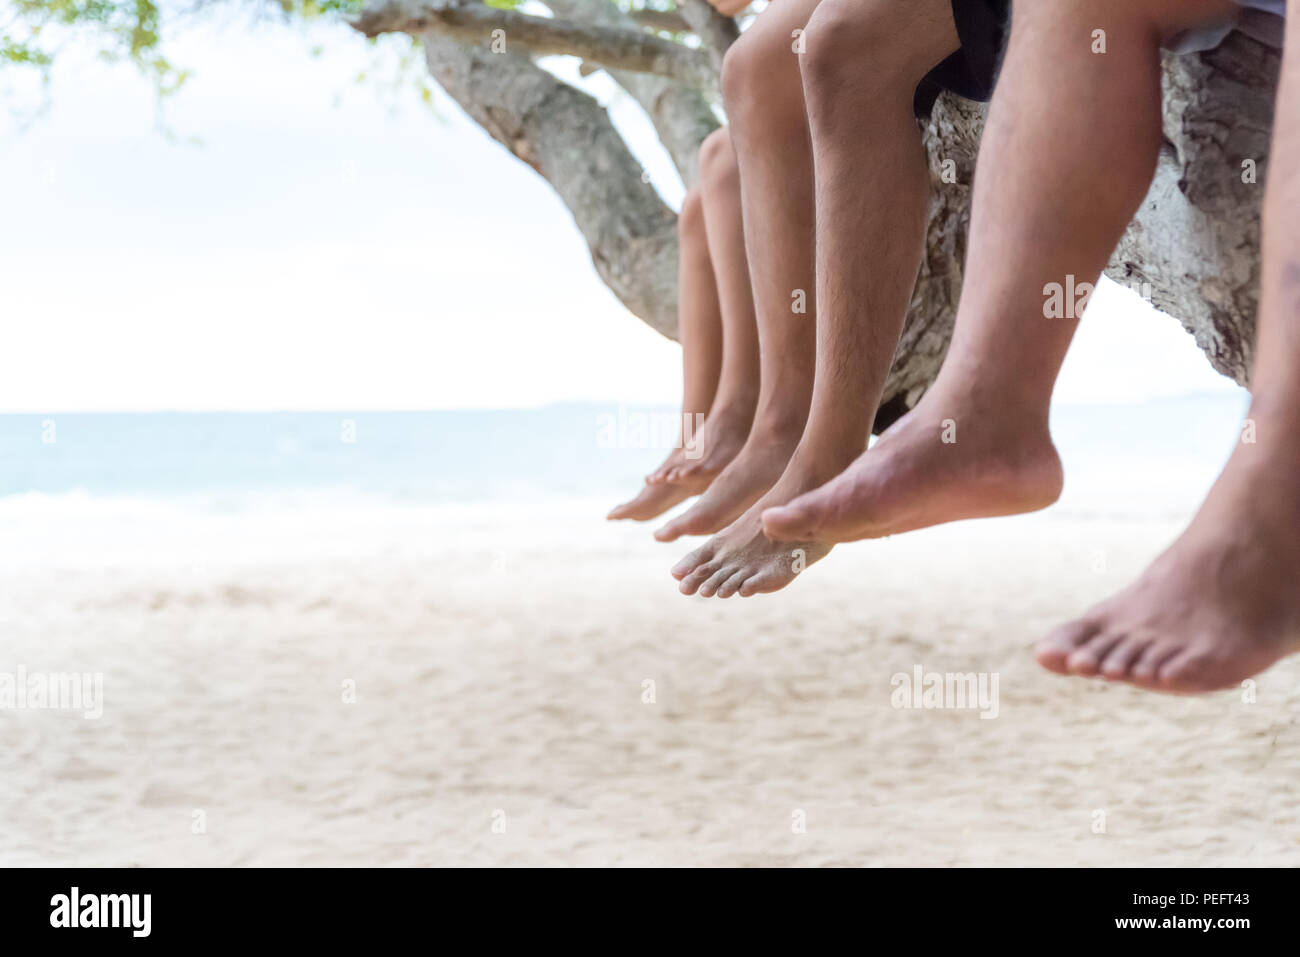 Three friends relaxing sit side by side on tree branch on the beach with blue sky background. friendship day and love concept. - Stock Image